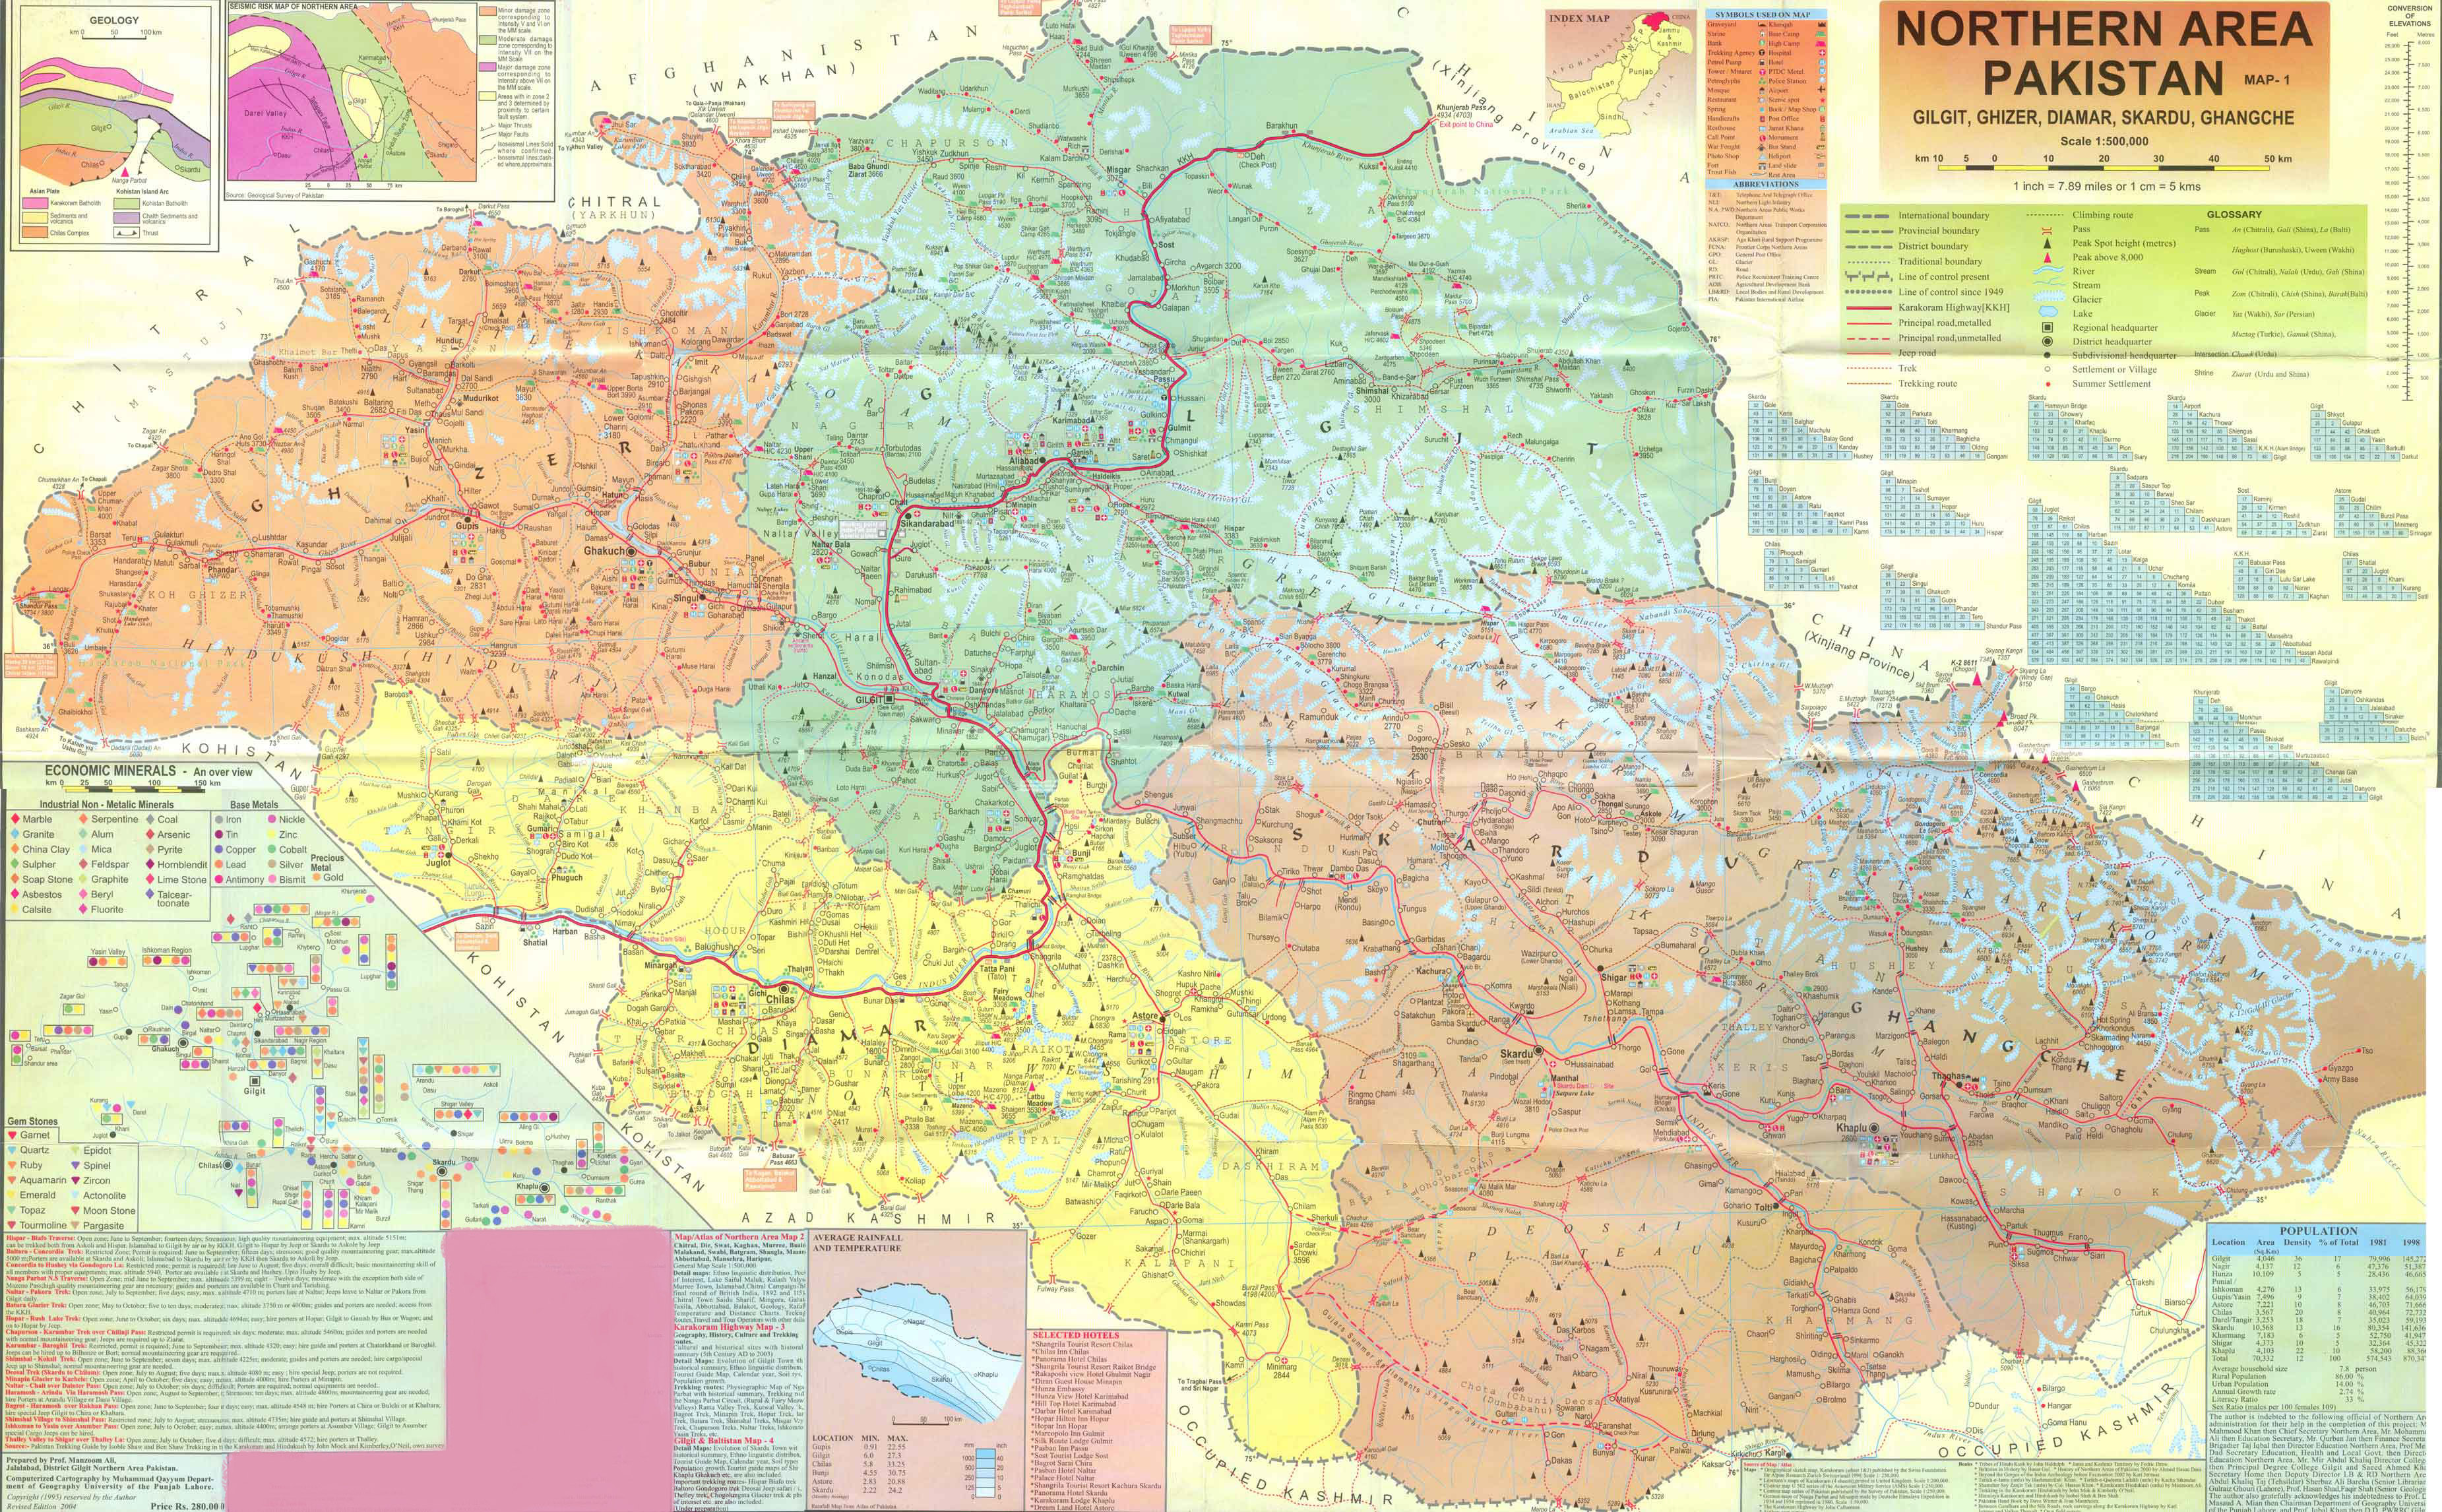 Detailed map of Northern areas of Pakistan Northern areas of